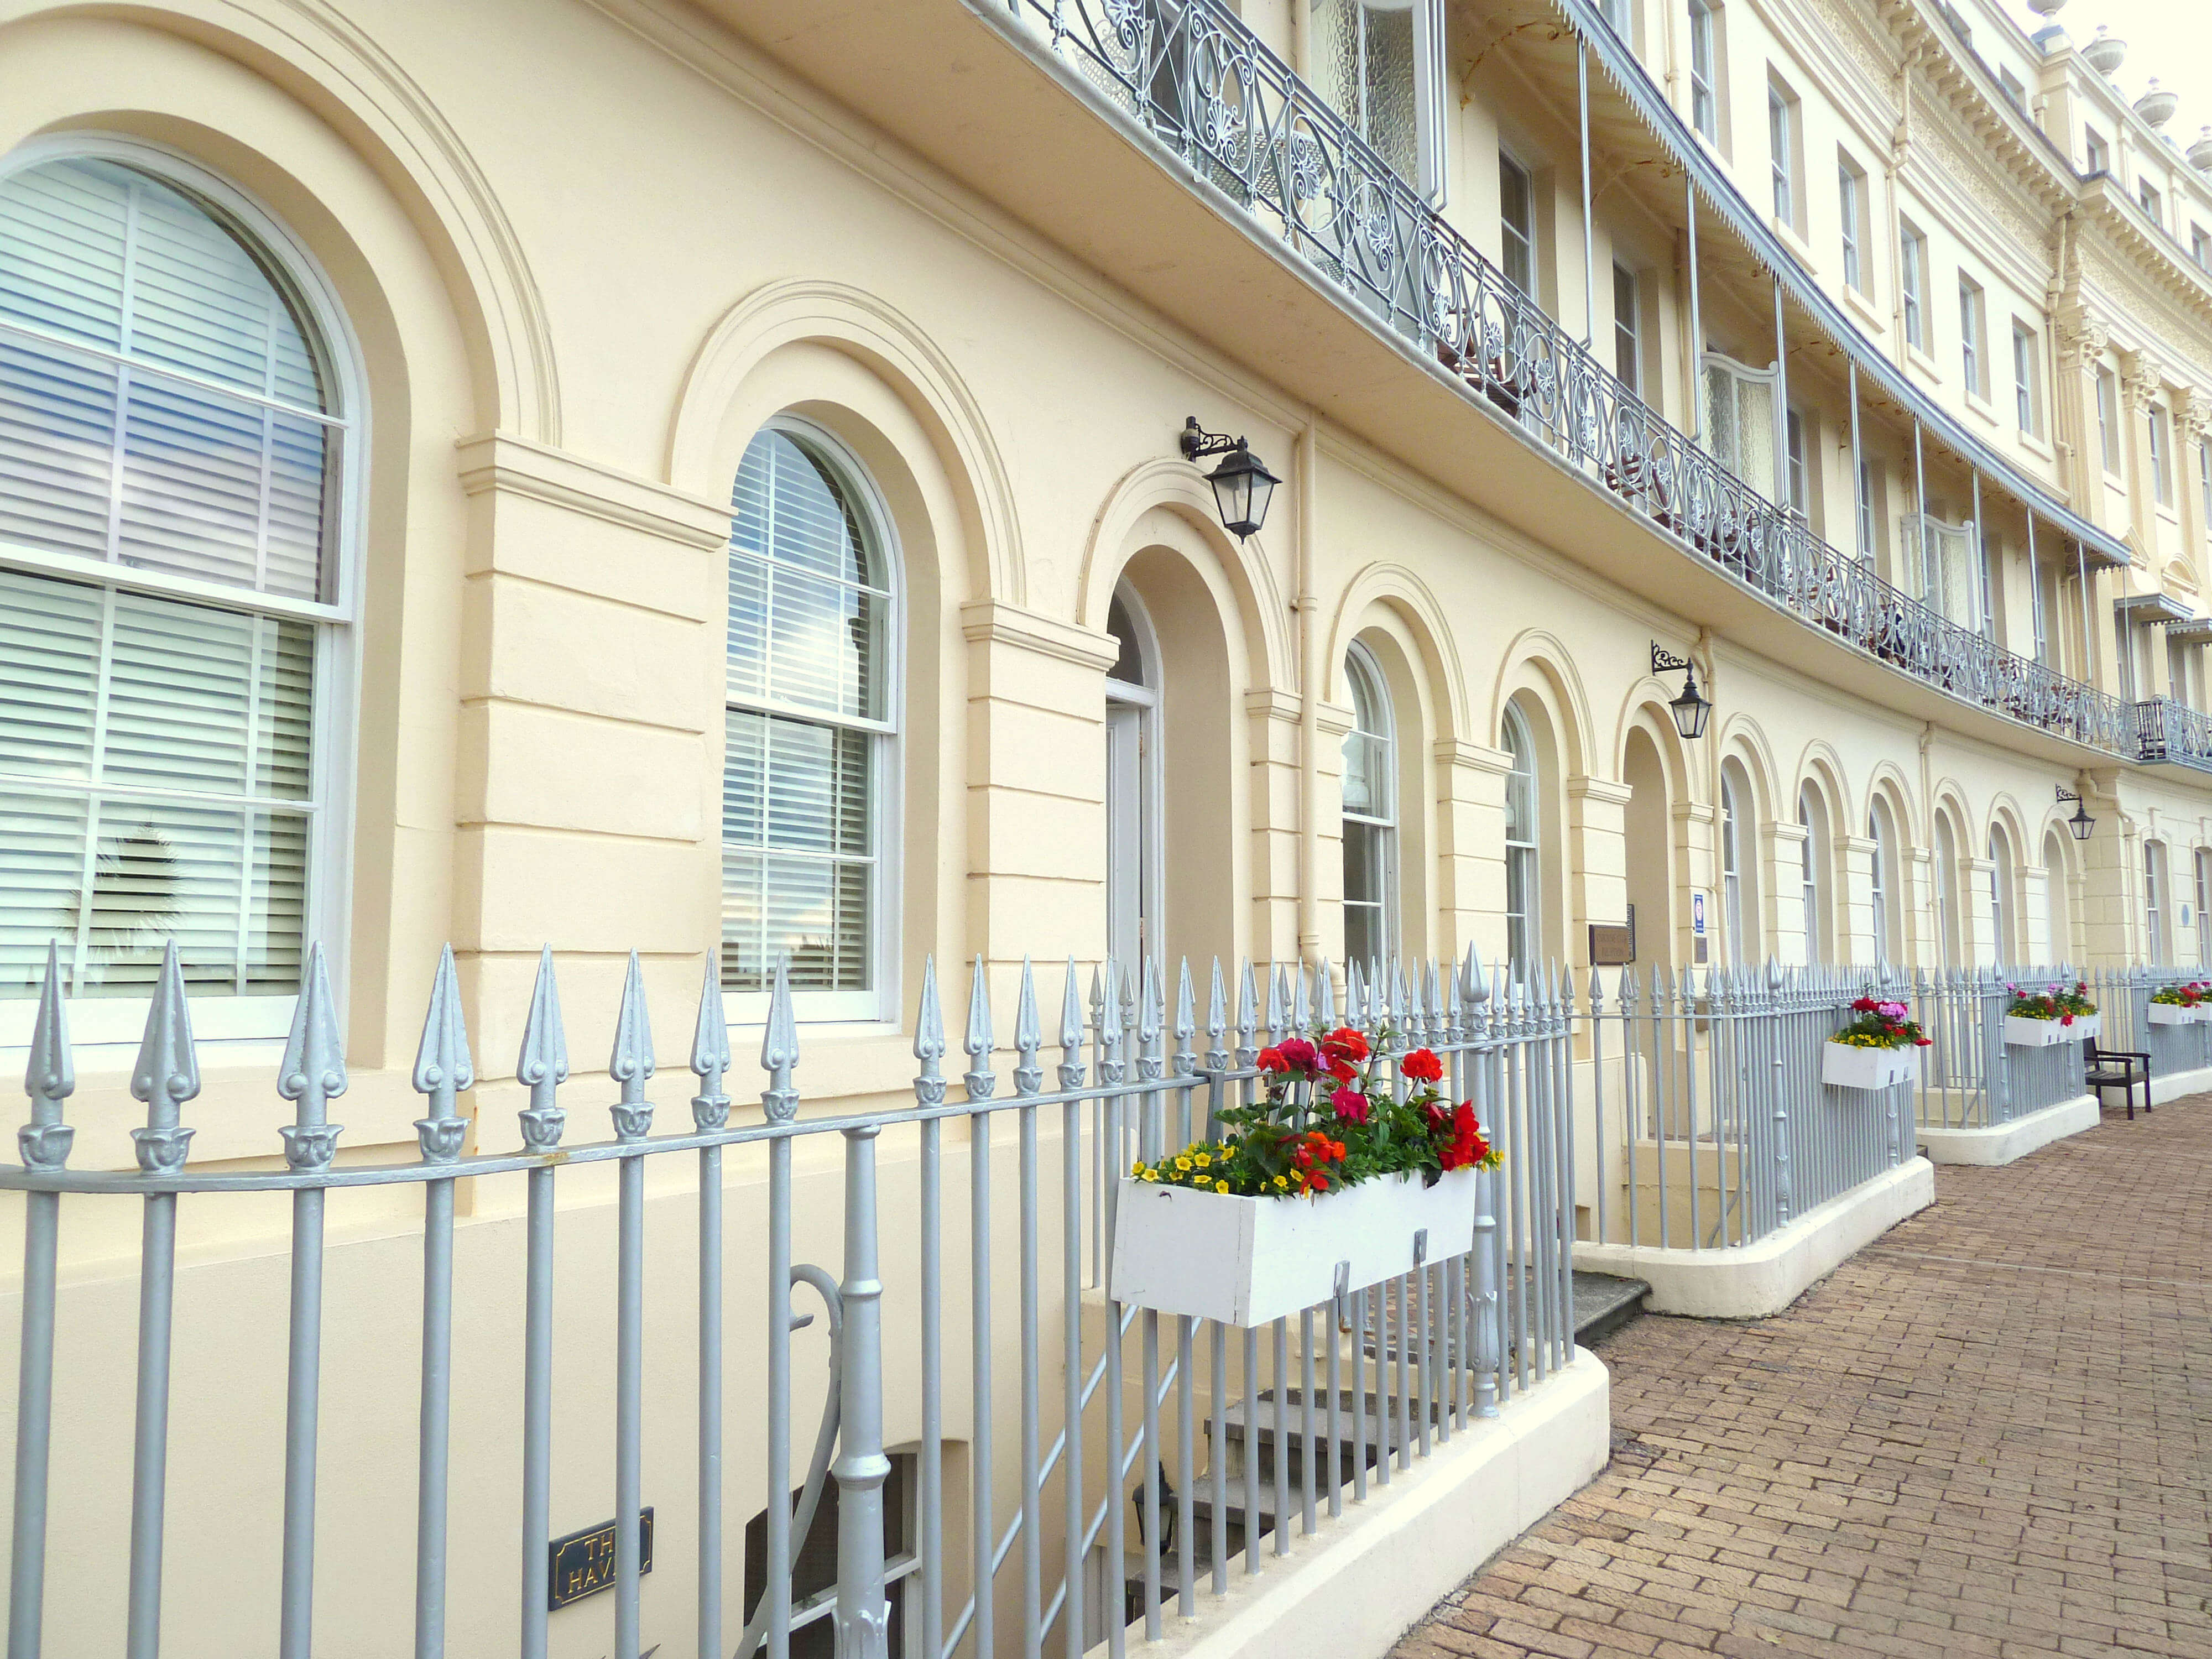 Hesketh Crescent Apartment - an ideal base from which to explore Agatha Christie's Torquay